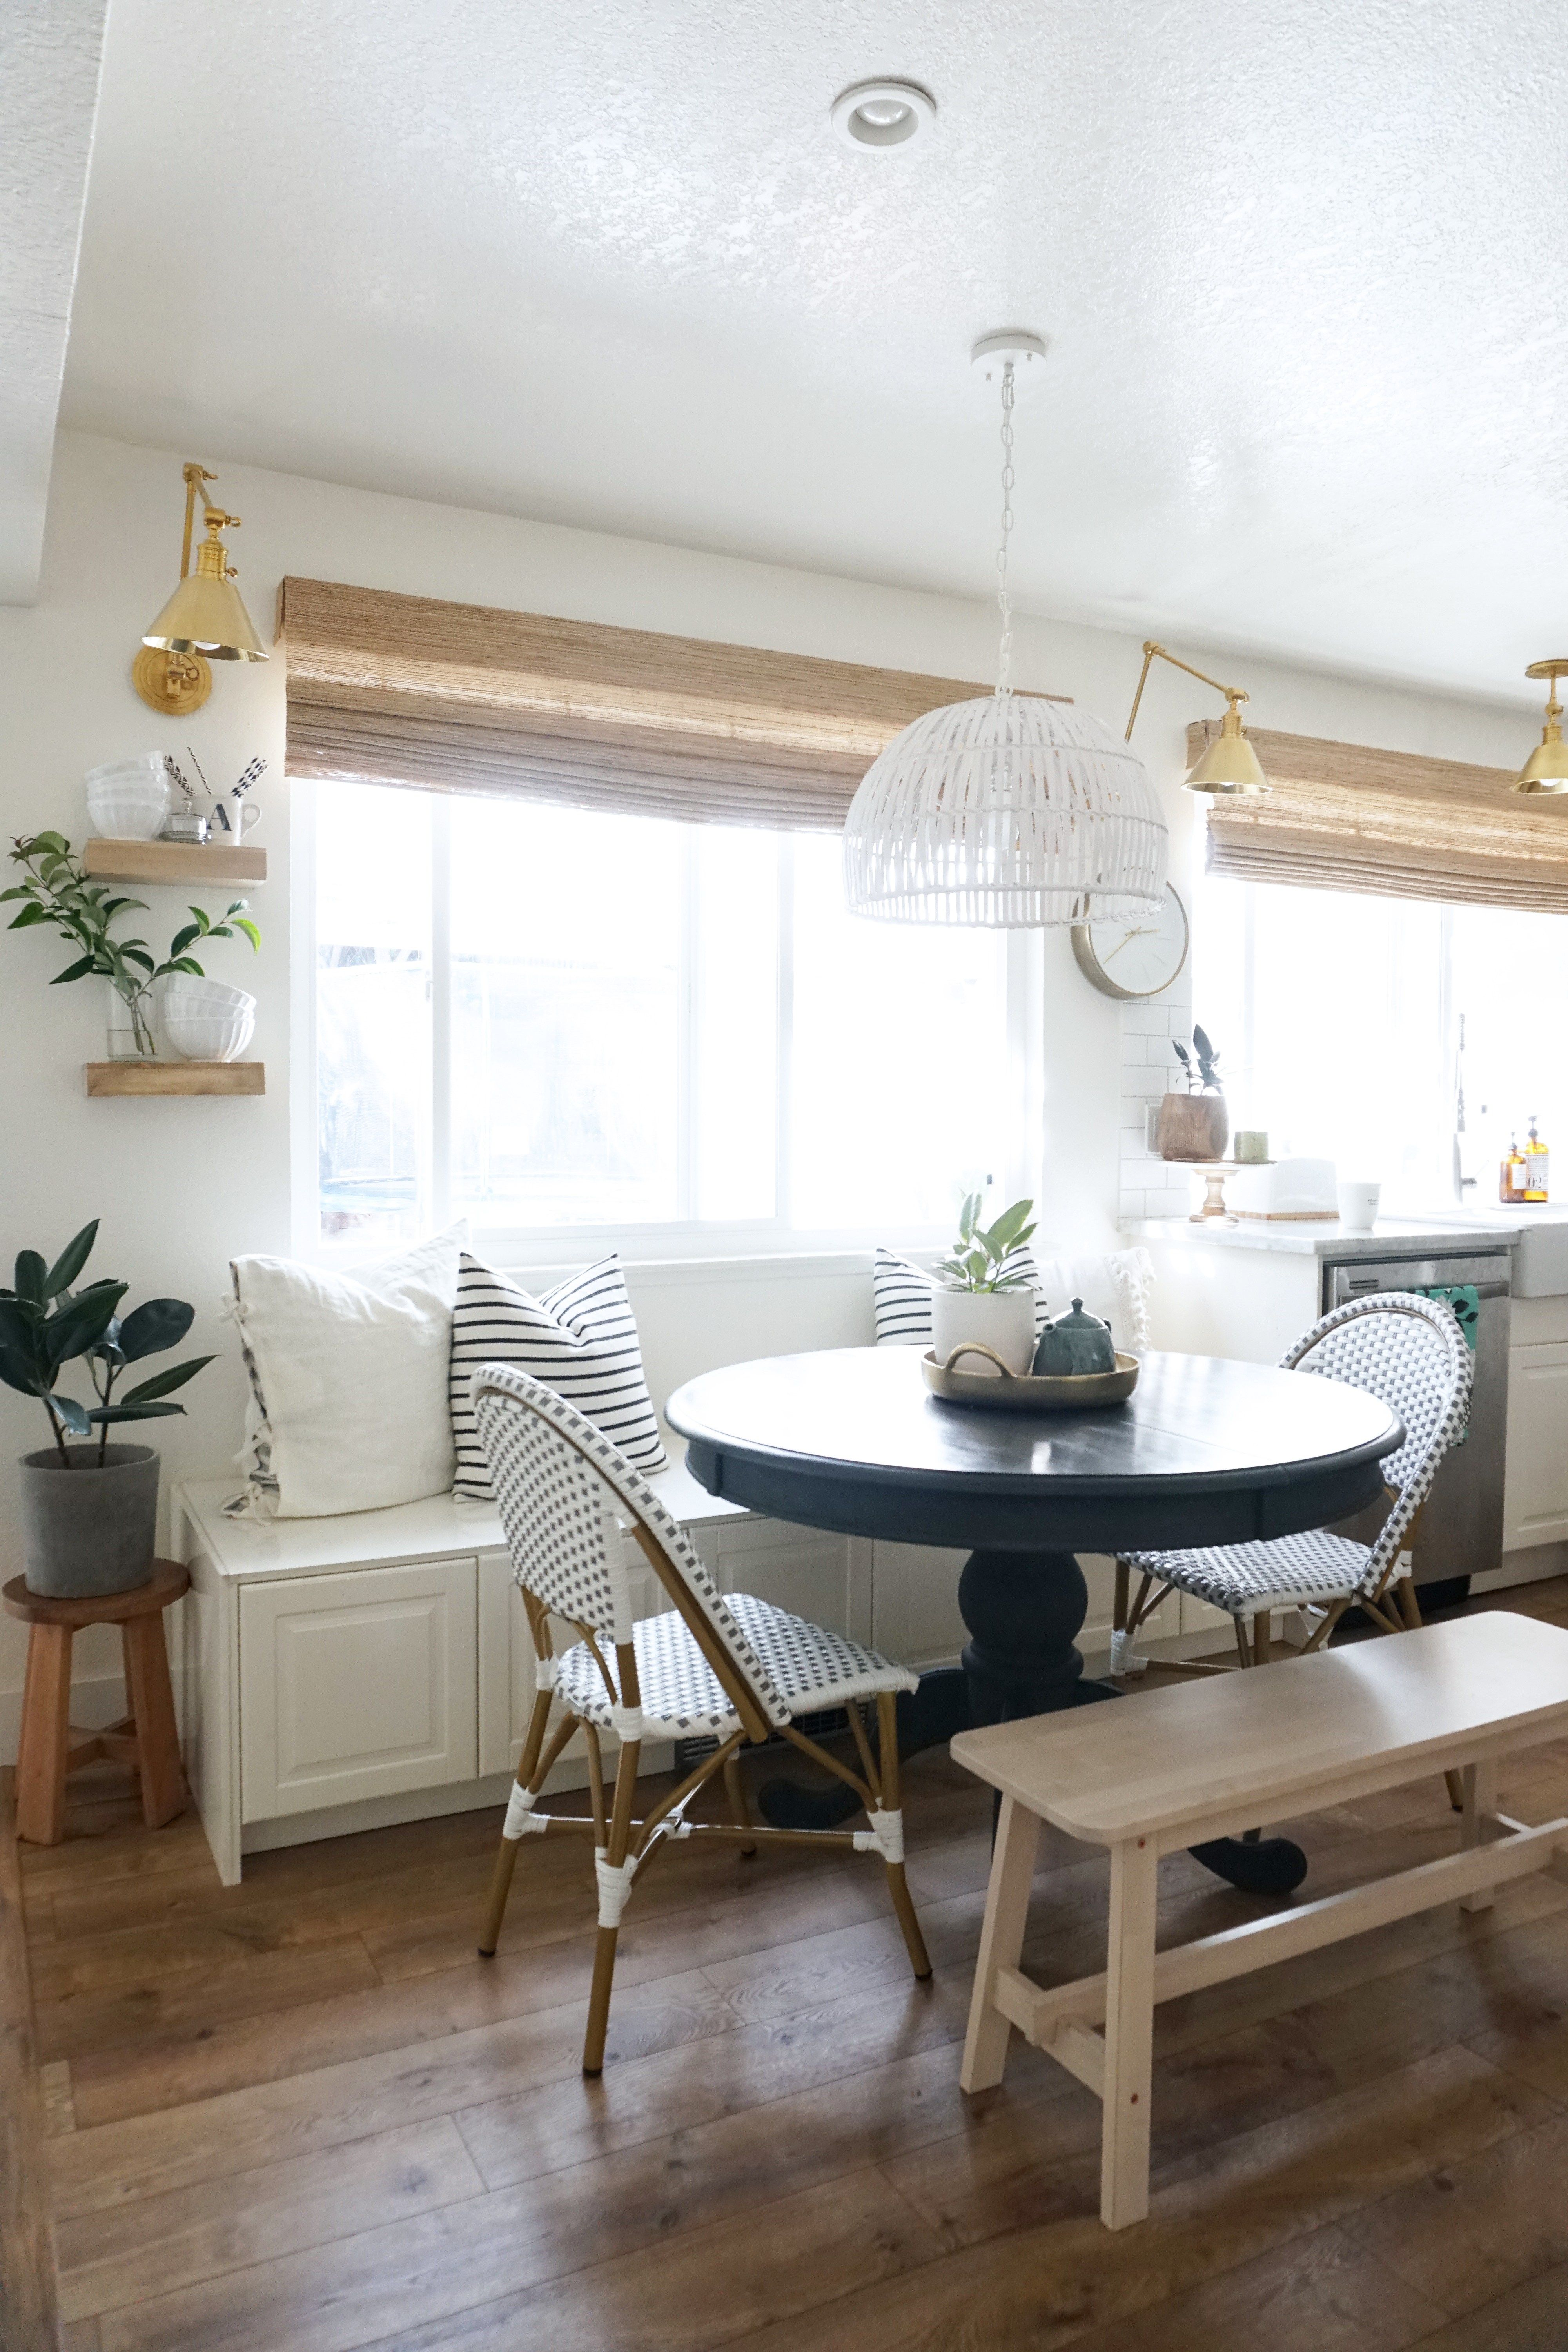 kitchen breakfast nook update this fall with images home decor kitchen breakfast nooks on kitchen nook id=80590